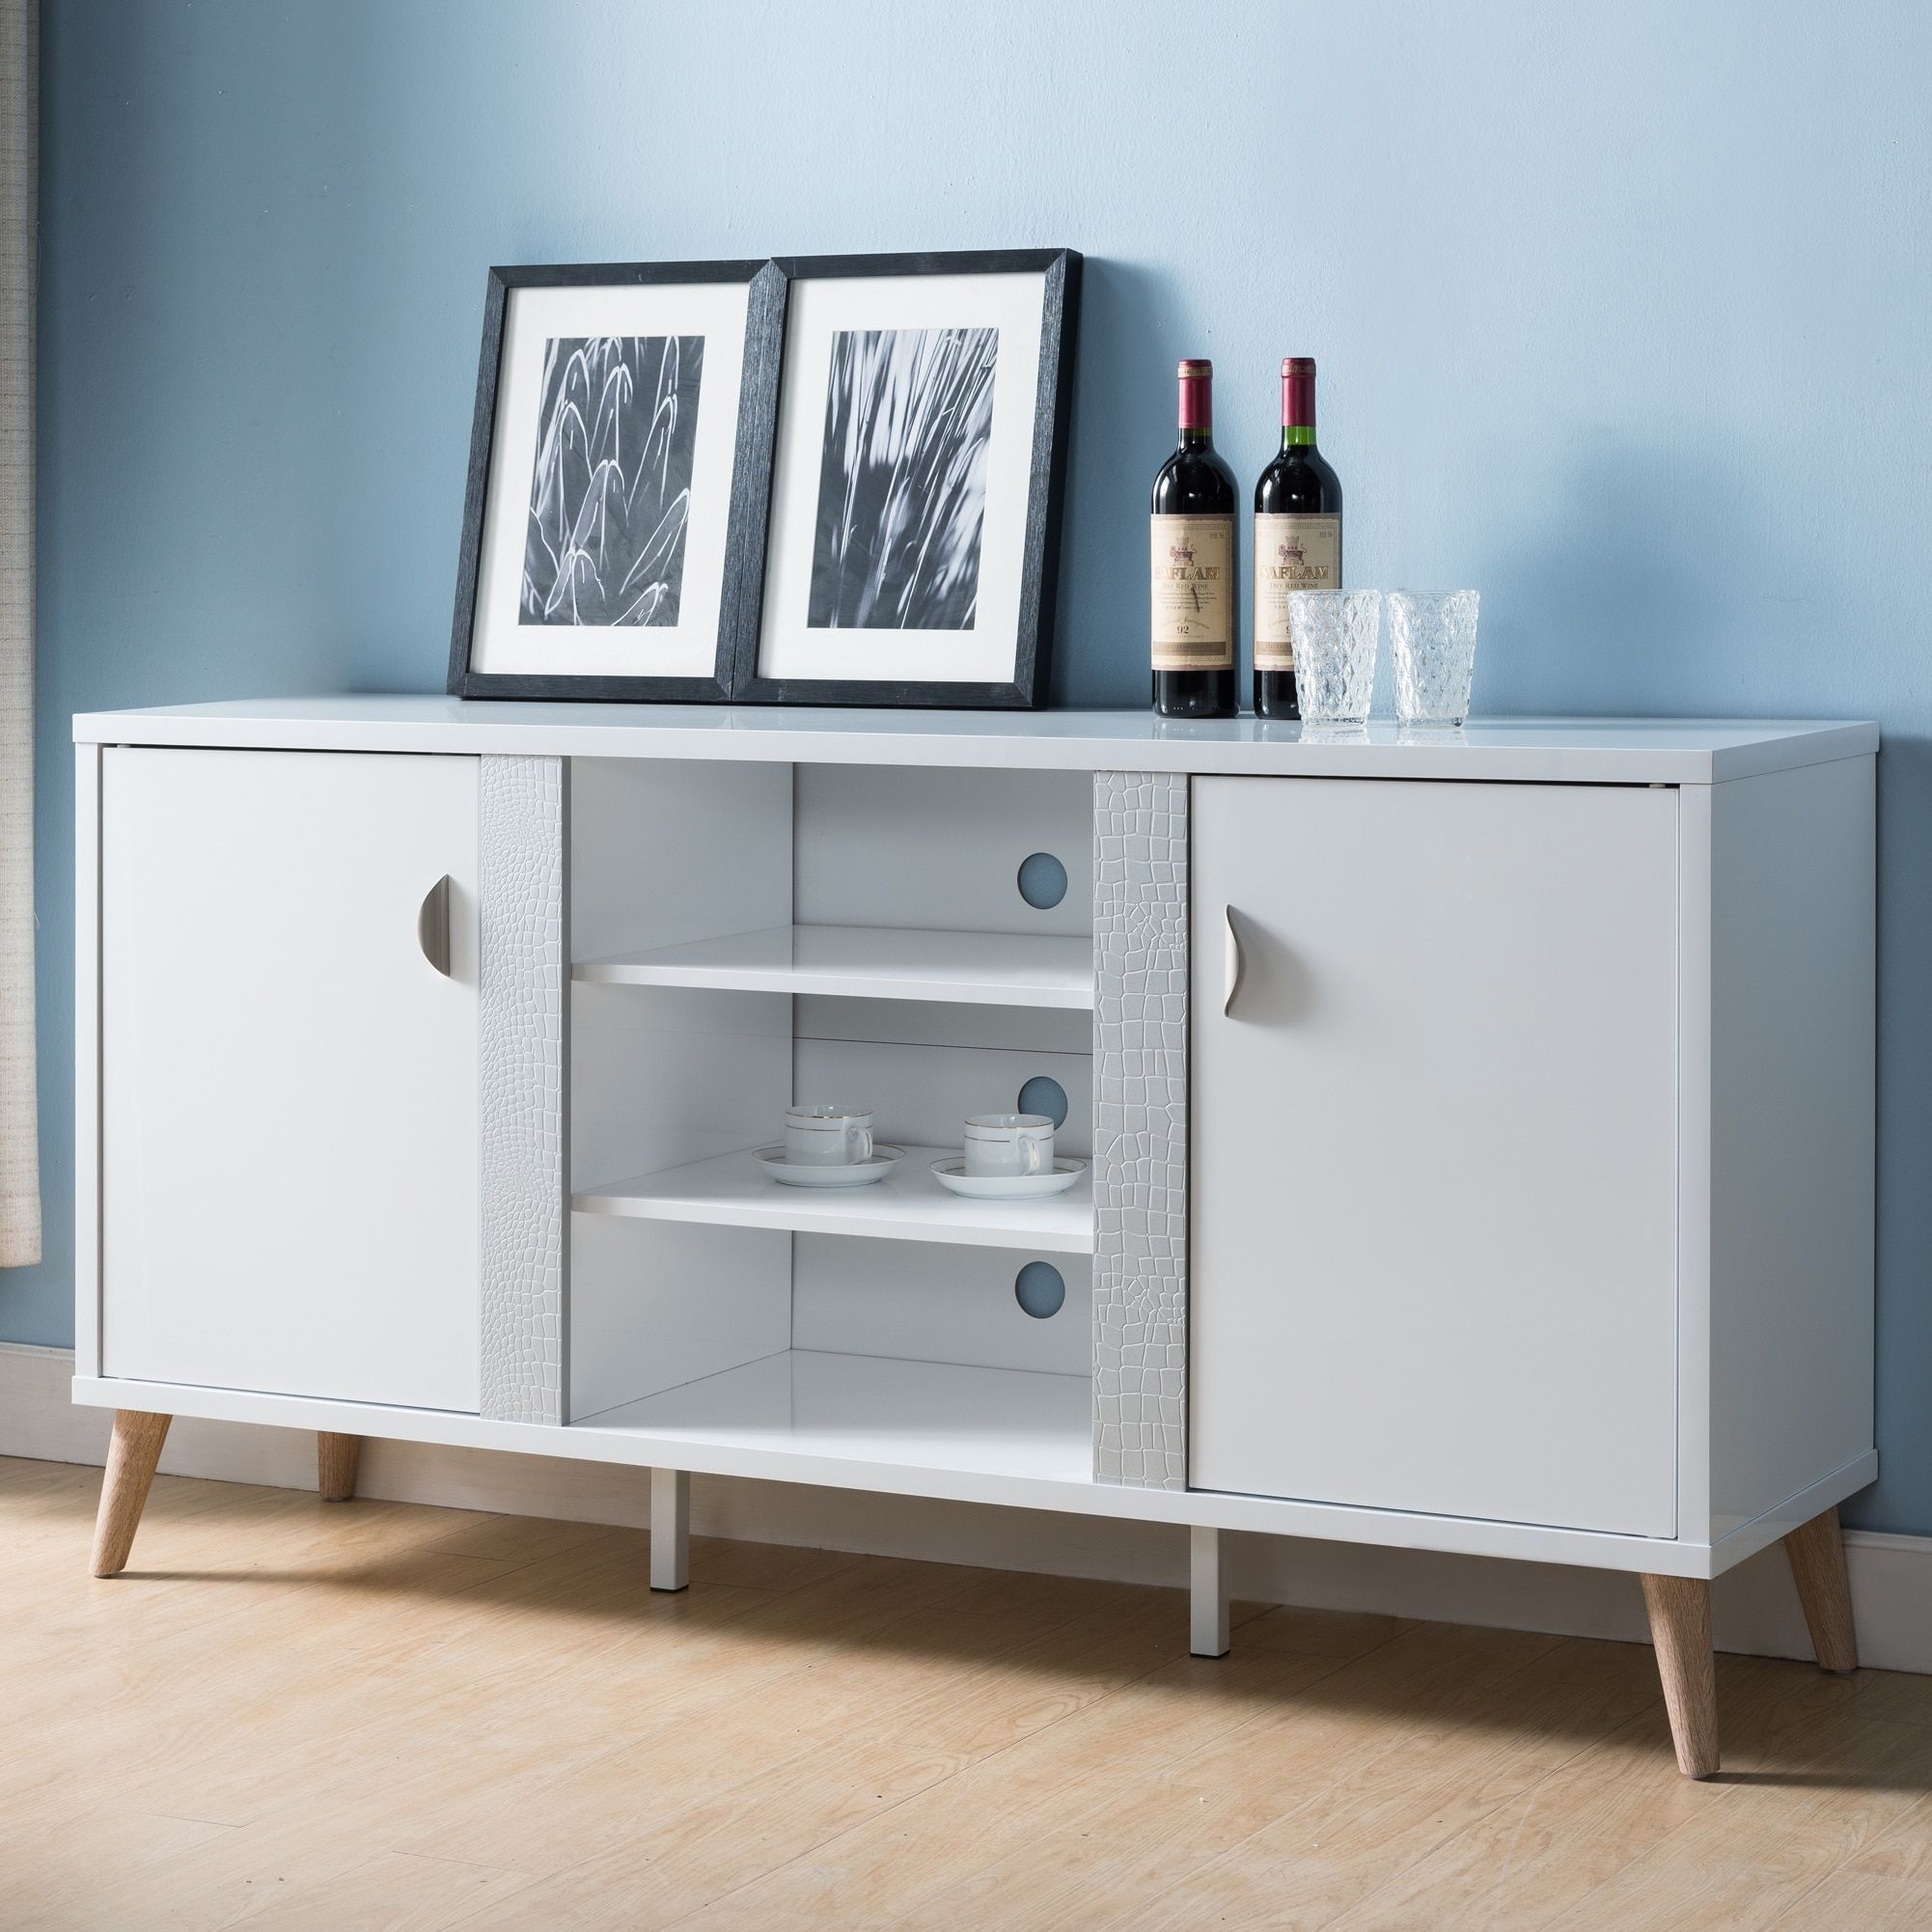 Tempton Mid Century Modern Glossy White Buffetfoa   Home Intended For Contemporary Multi Storage Dining Buffets (View 30 of 30)